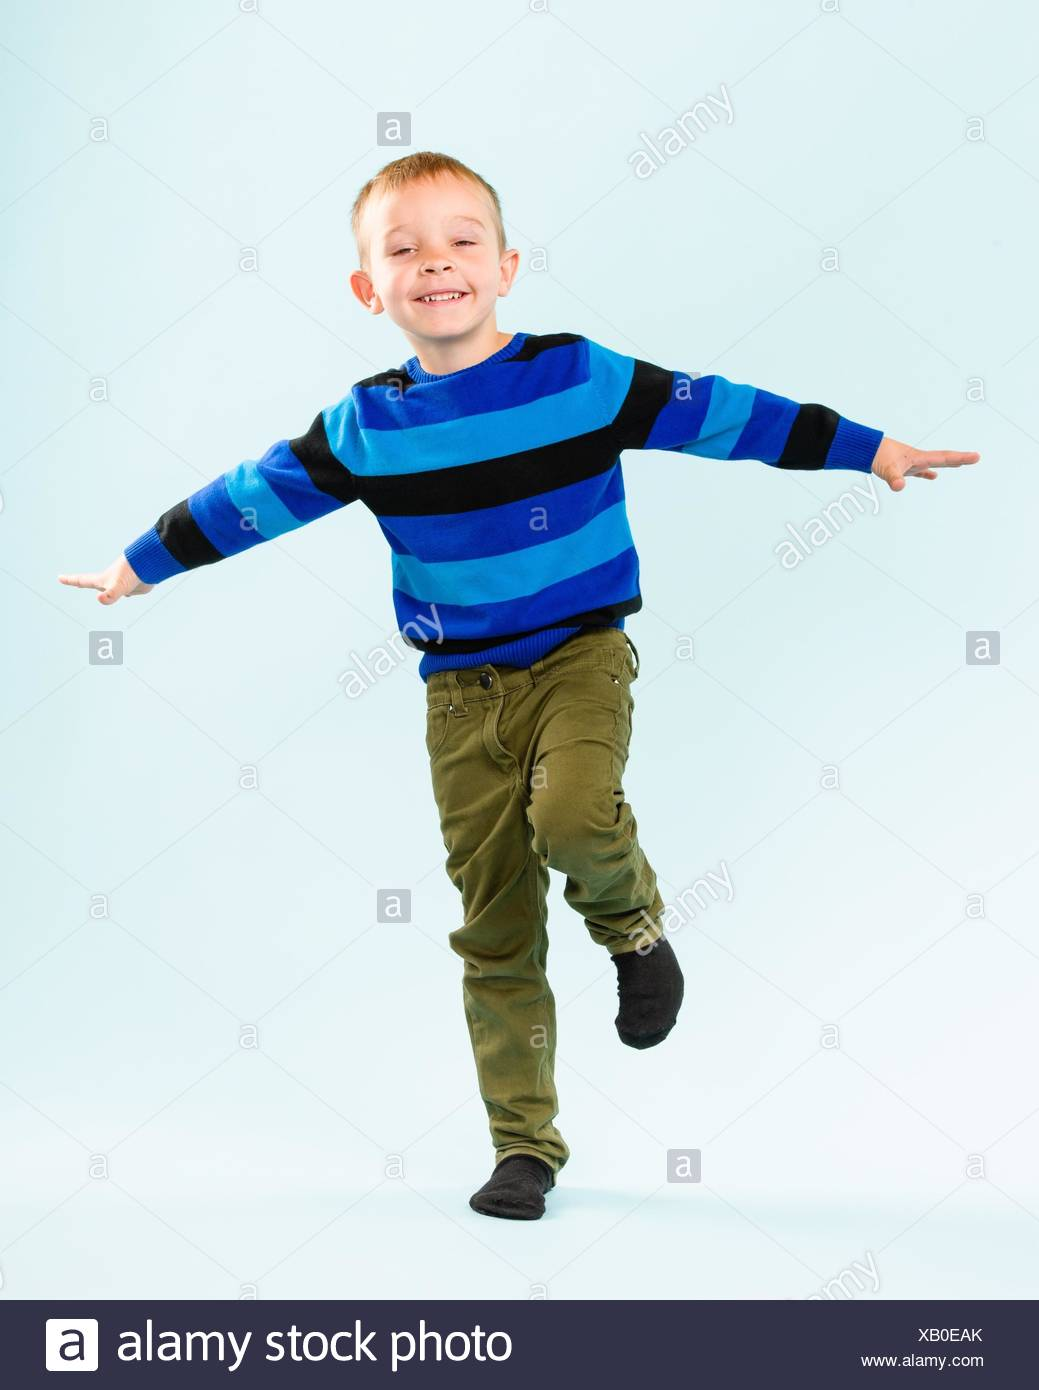 playful little boy on studio, light blue background stock photo